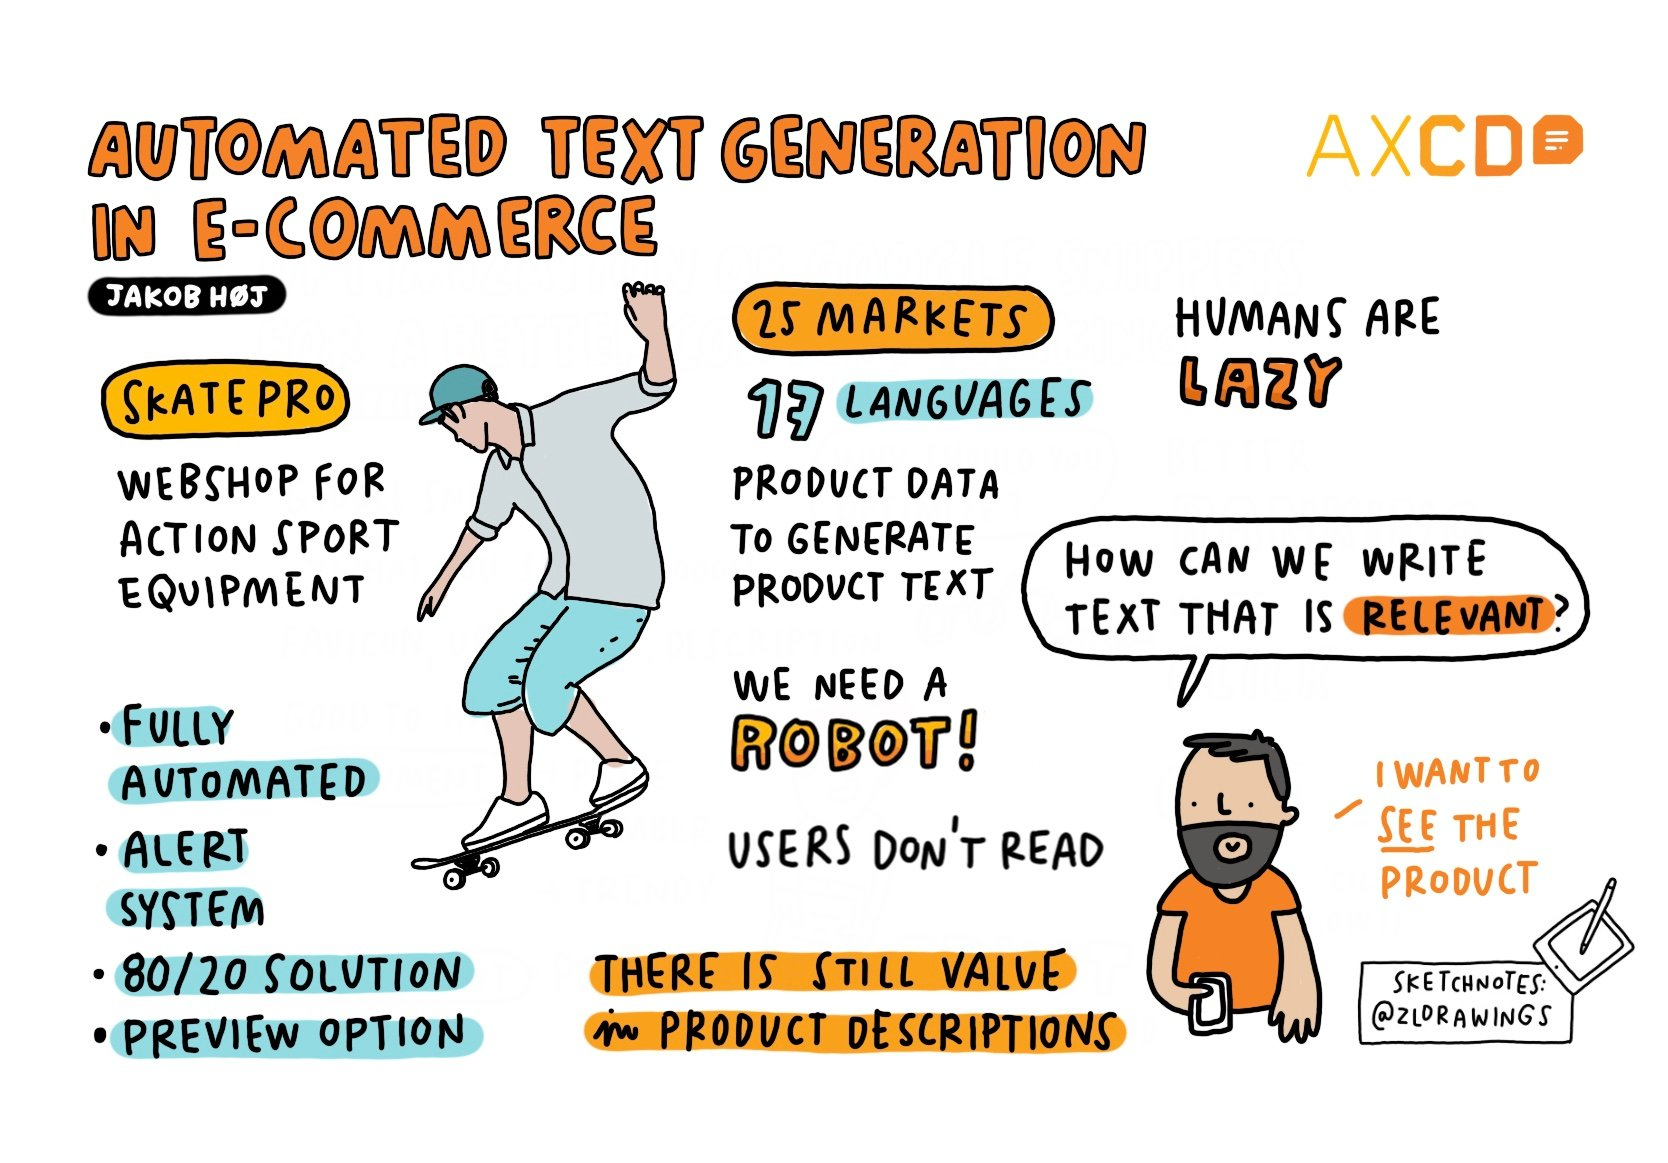 Sketchnote of automated text generation in ecommerce - Jakob Biegel's AXCD talk